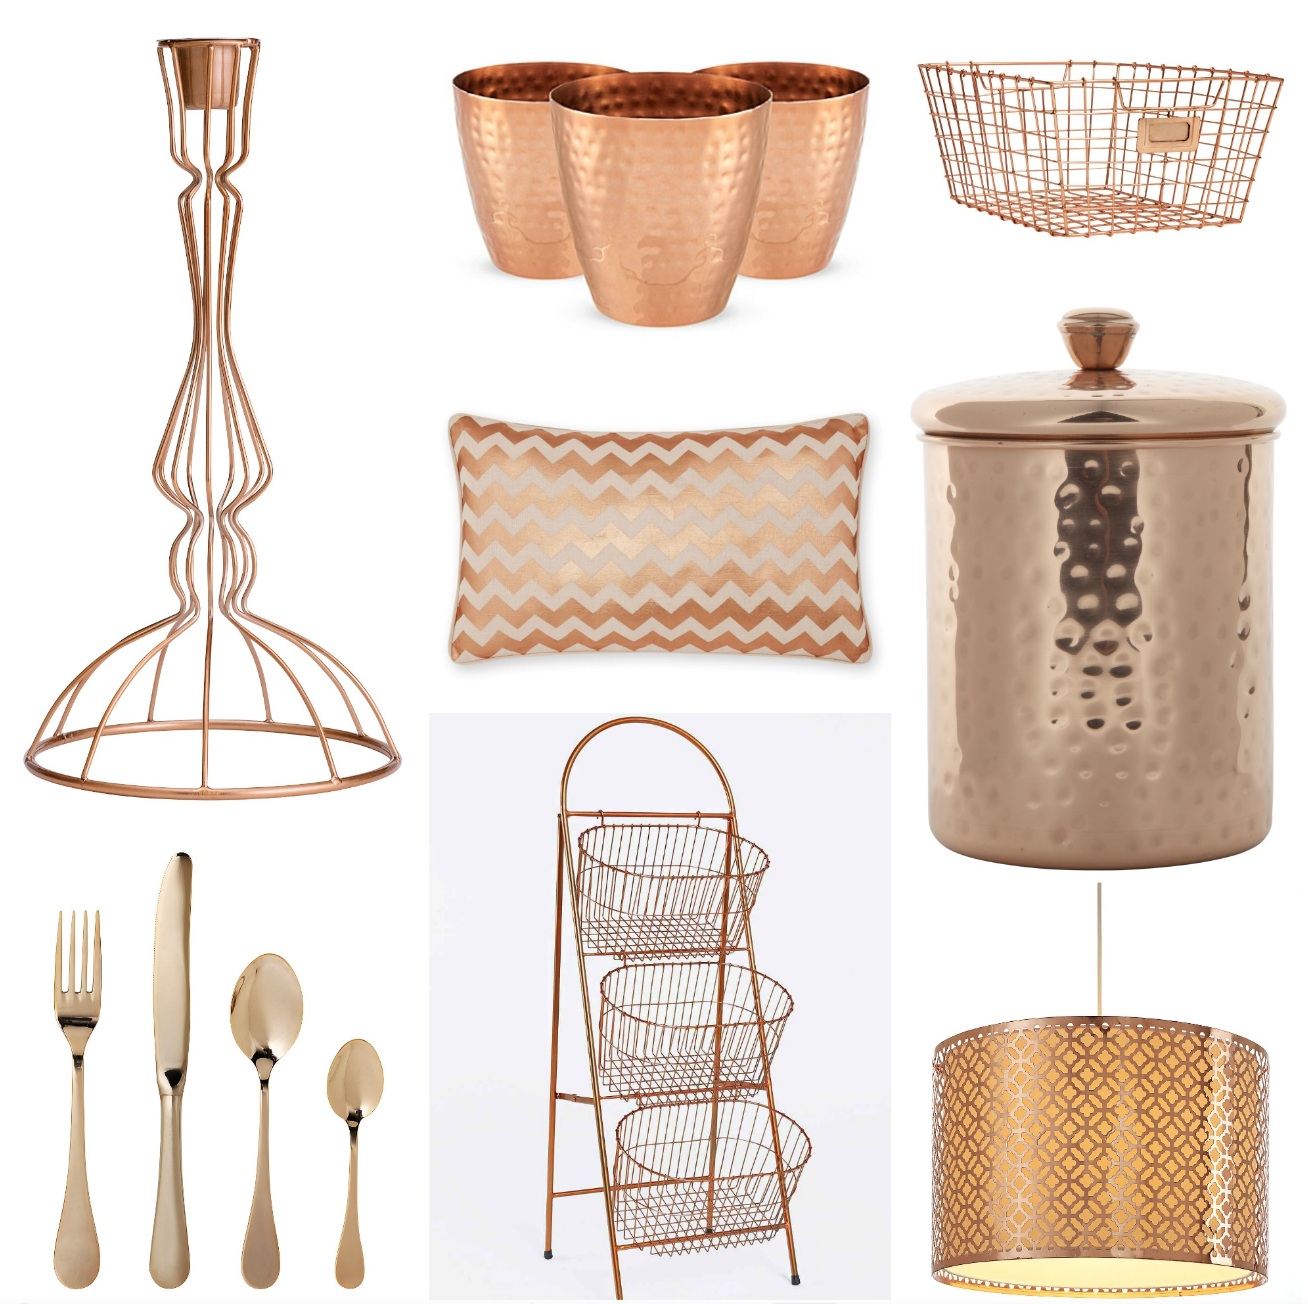 V i buys copper crush 12 great ways to instantly update your home mamas v i b - Rosegold dekoration ...